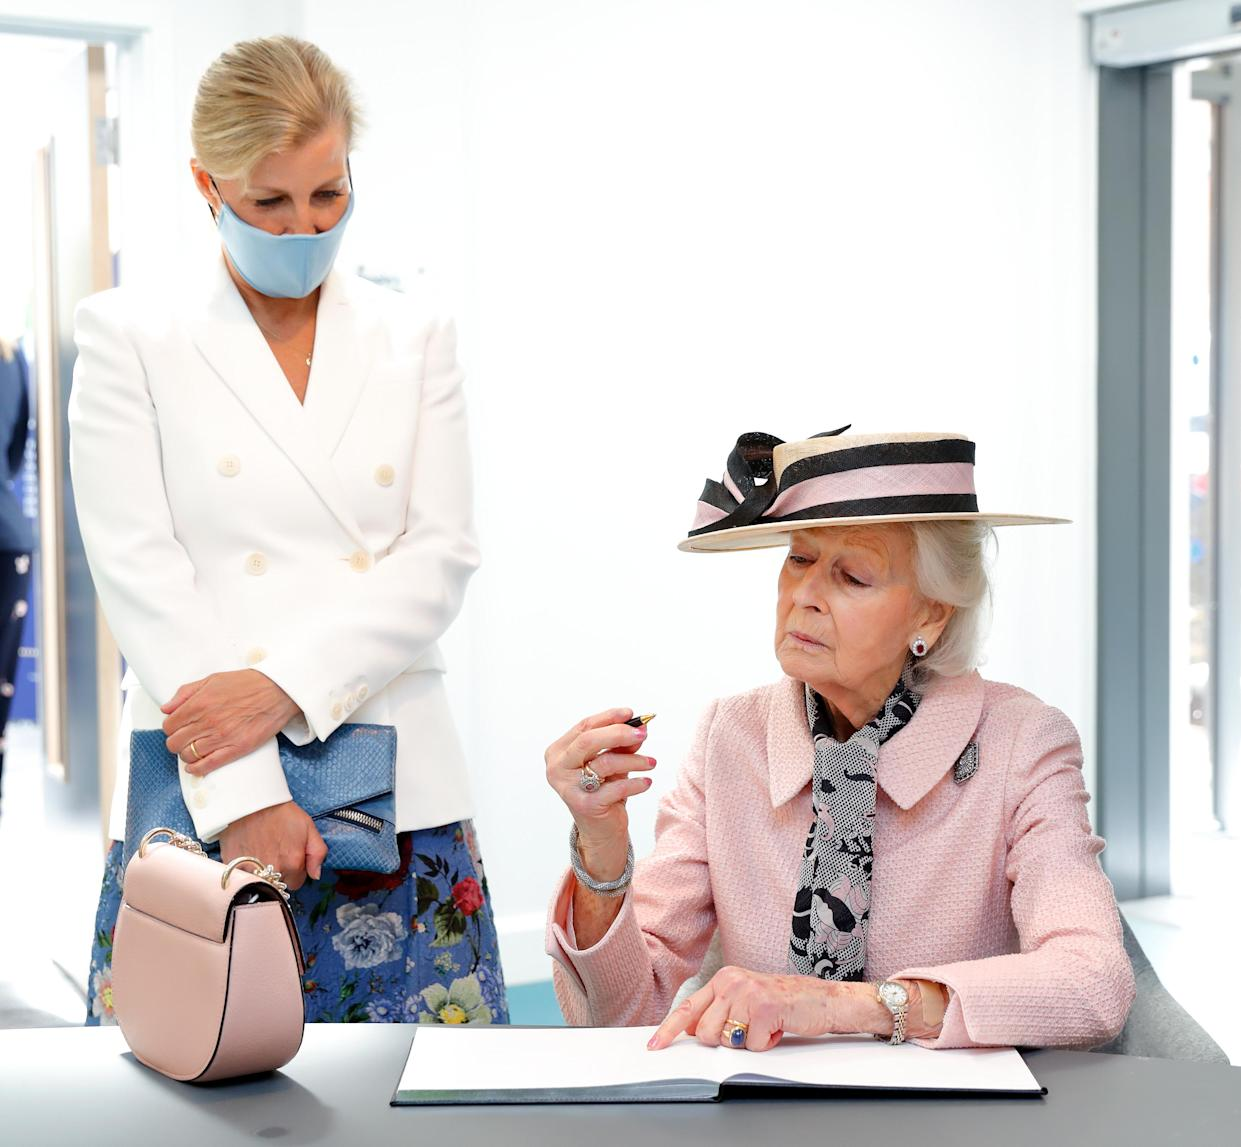 BRISTOL, UNITED KINGDOM - JULY 07: (EMBARGOED FOR PUBLICATION IN UK NEWSPAPERS UNTIL 24 HOURS AFTER CREATE DATE AND TIME) Sophie, Countess of Wessex looks on as Princess Alexandra signs the visitor's book during a visit to the Guide Dogs for the Blind Association to open their new south west regional centre and celebrate the charity's 90th anniversary on July 7, 2021 in Bristol, England. During the visit Princess Alexandra, who has been patron the Guide Dogs for the Blind Association since 1954, formally handed over the patronage to Sophie, Countess of Wessex. (Photo by Max Mumby/Indigo/Getty Images)